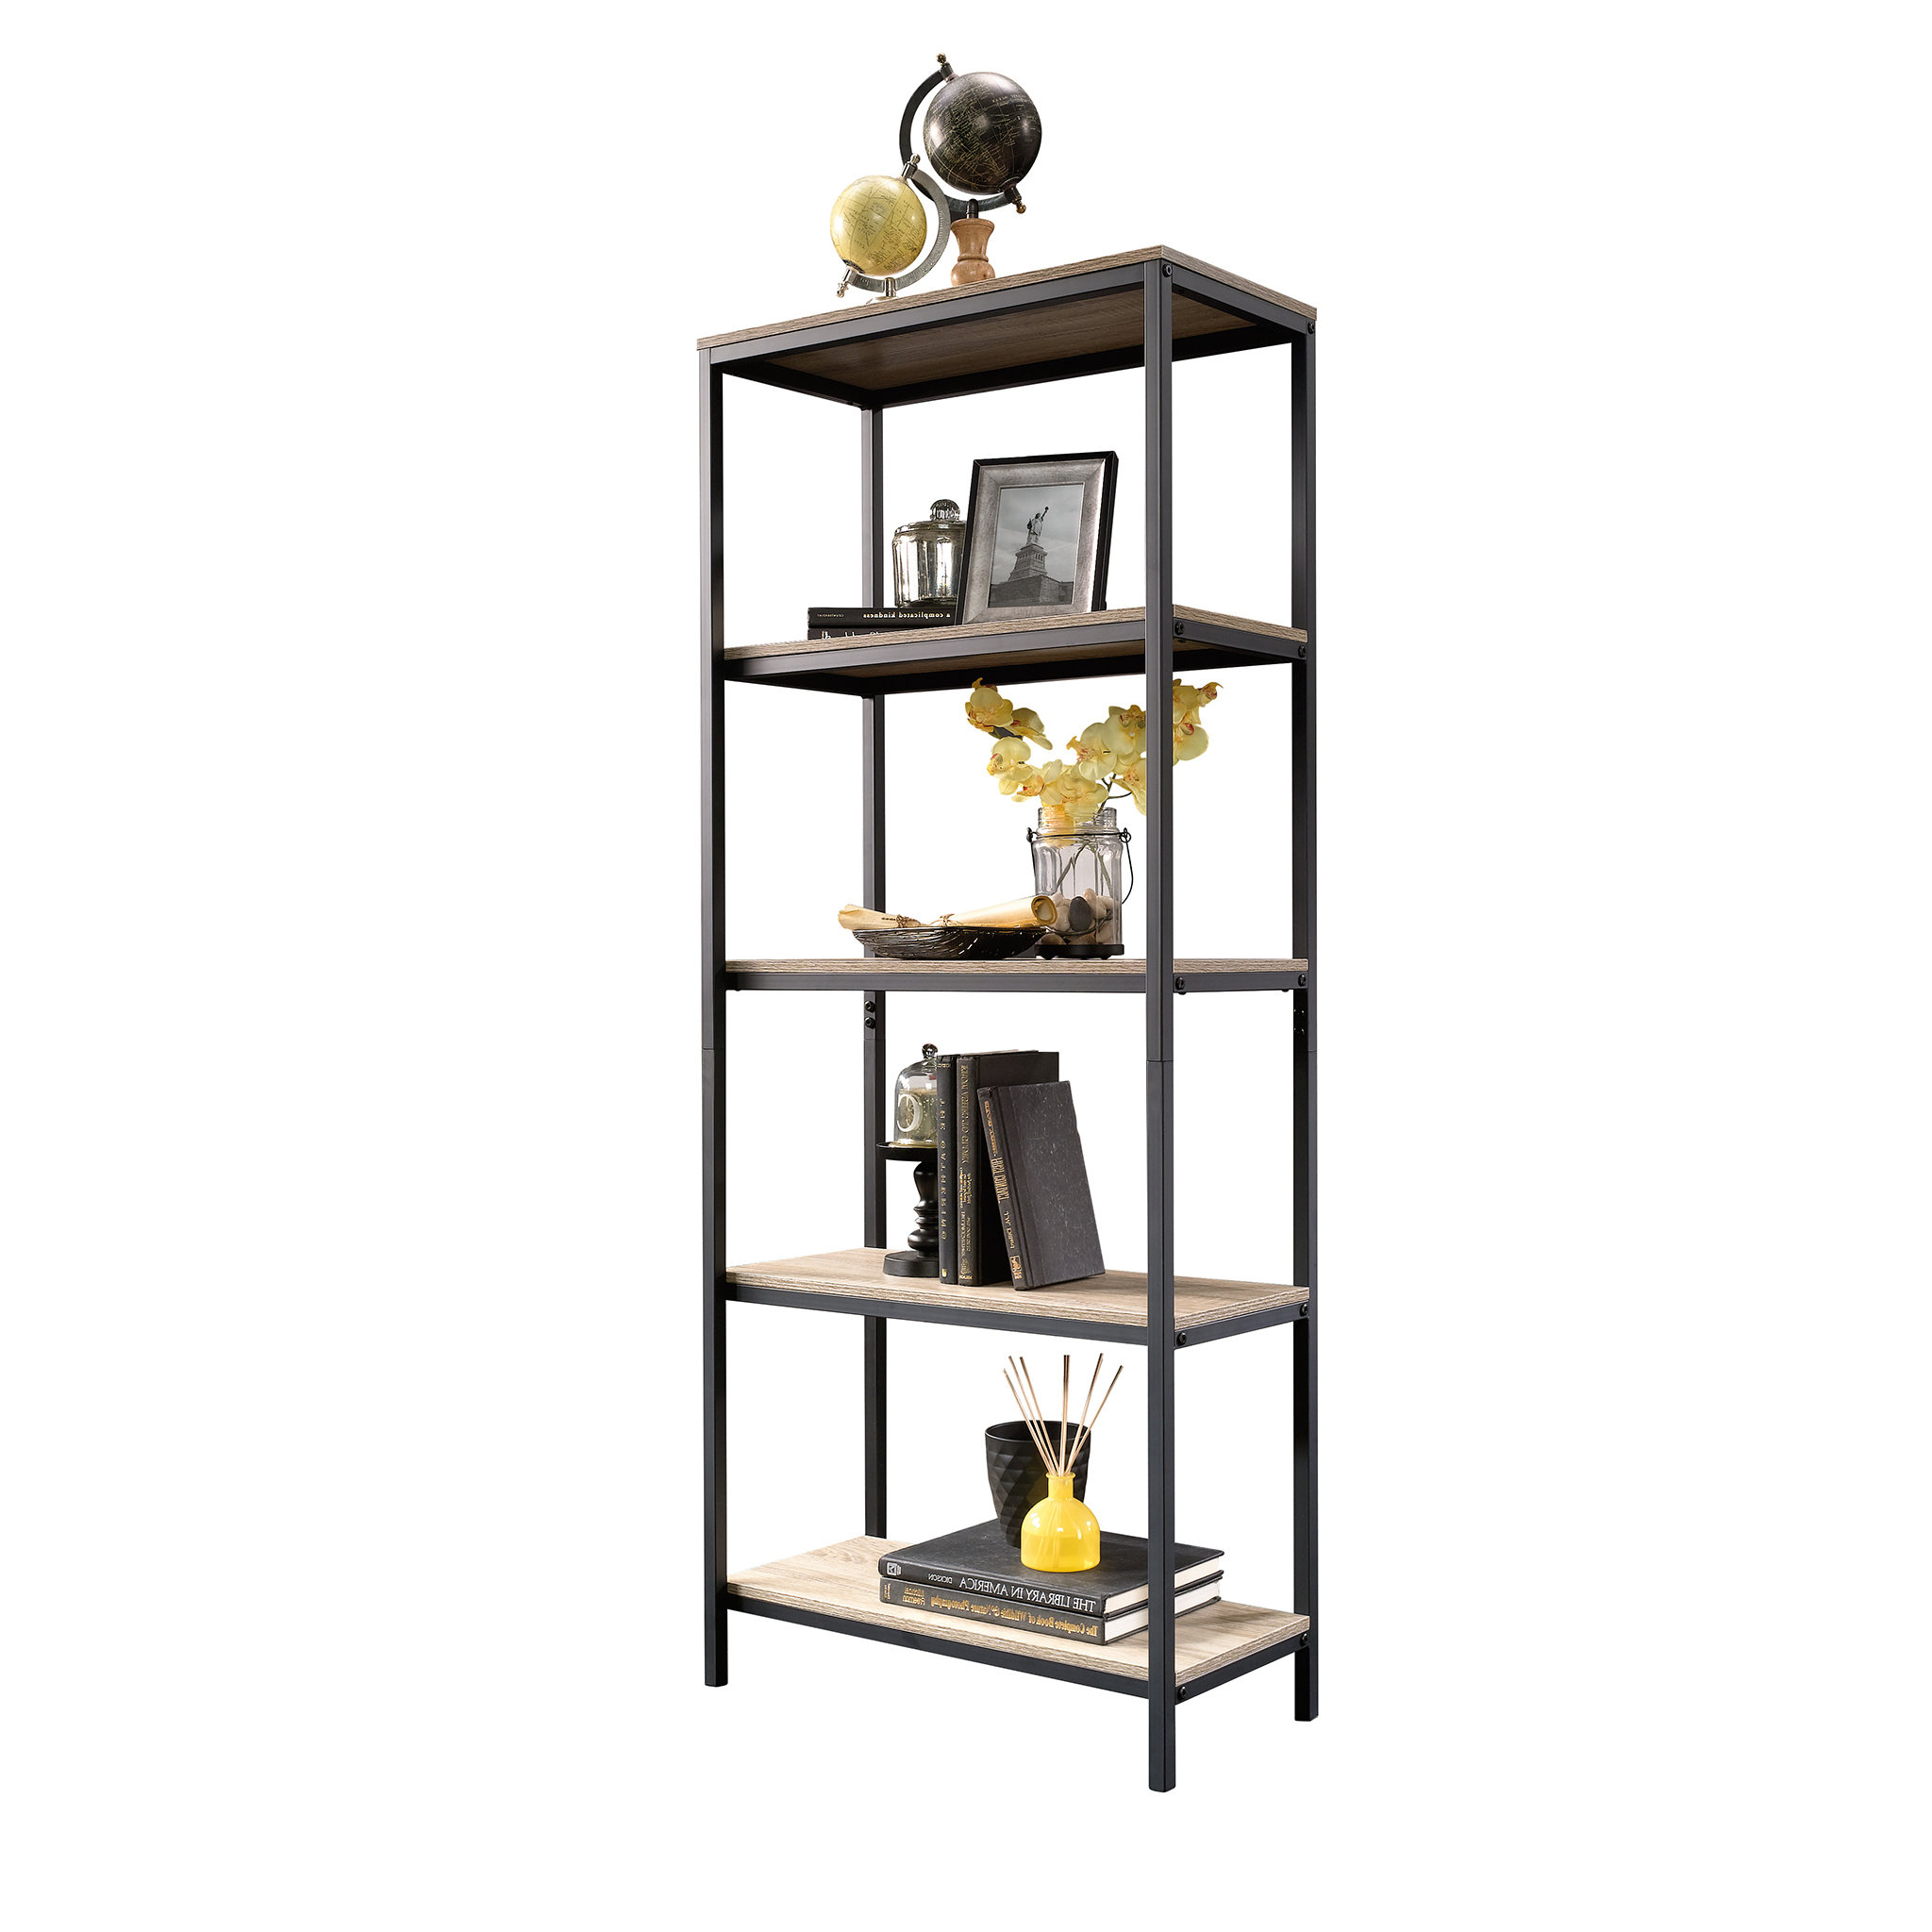 Ermont Etagere Bookcases Within Current Ermont Etagere Bookcase (Gallery 2 of 20)